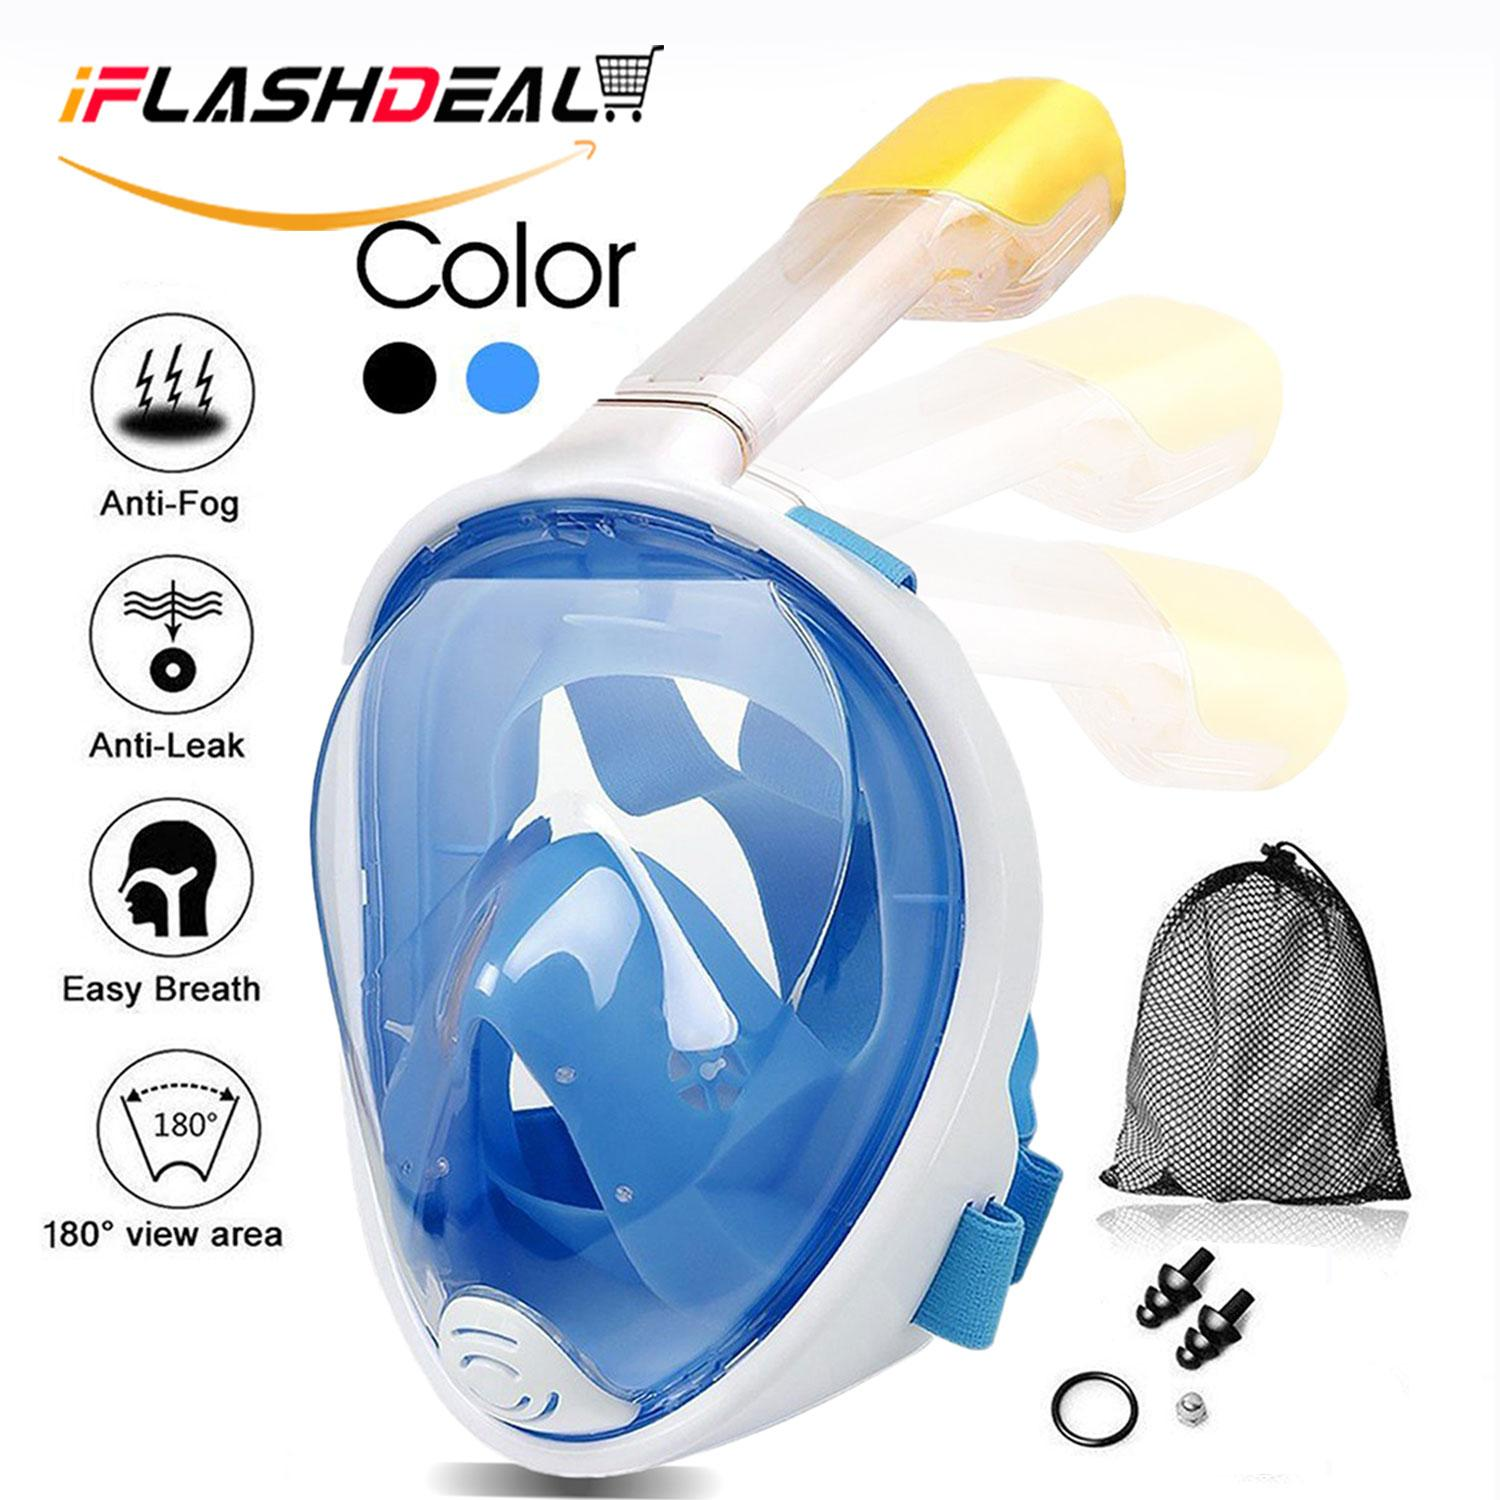 Iflashdeal Masker Diving Outdoor Olahraga Air Menyelam Snorkeling Snorkel Mask Full Face Snorkeling And Diving Mask L With 180° Panoramic Viewing By Iflashdeal.